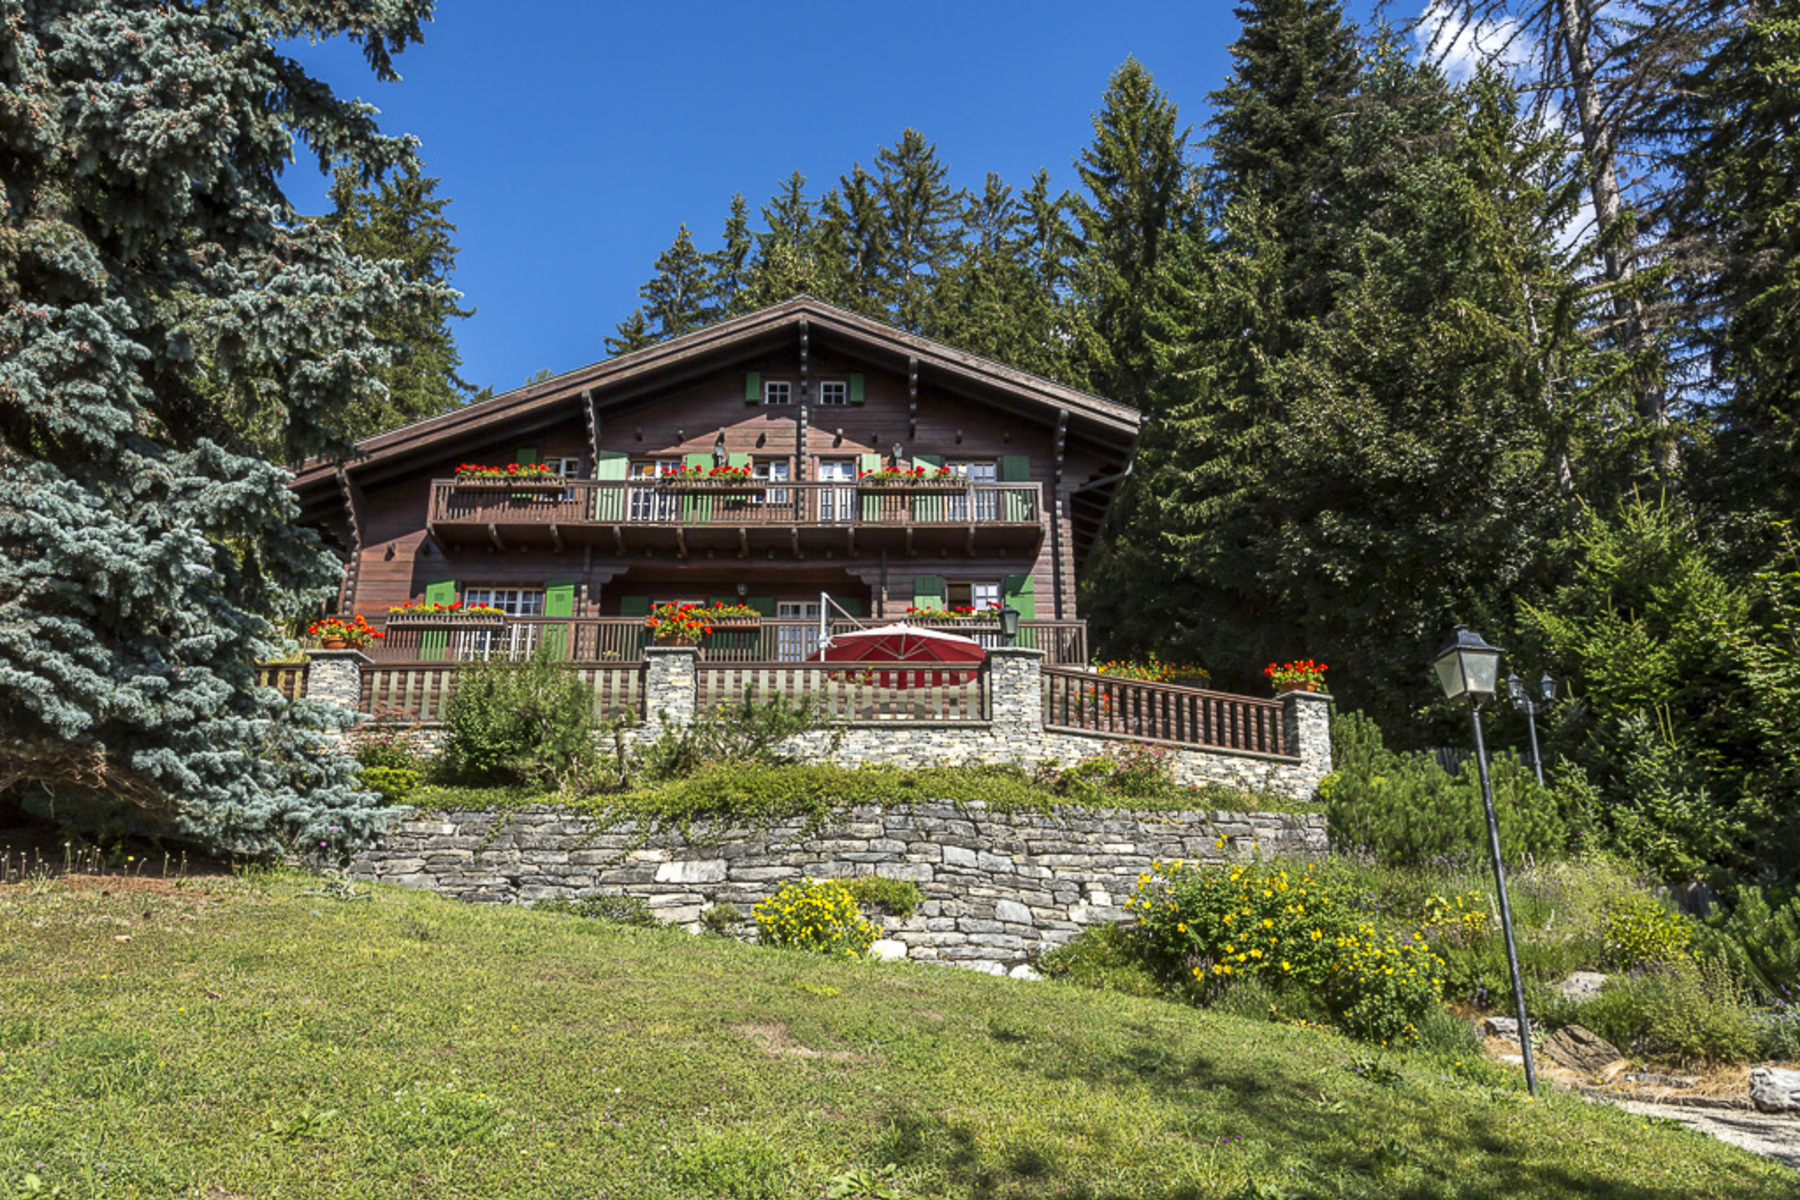 Single Family Home for Sale at Route du Rawyl Crans, Valais, 3963 Switzerland